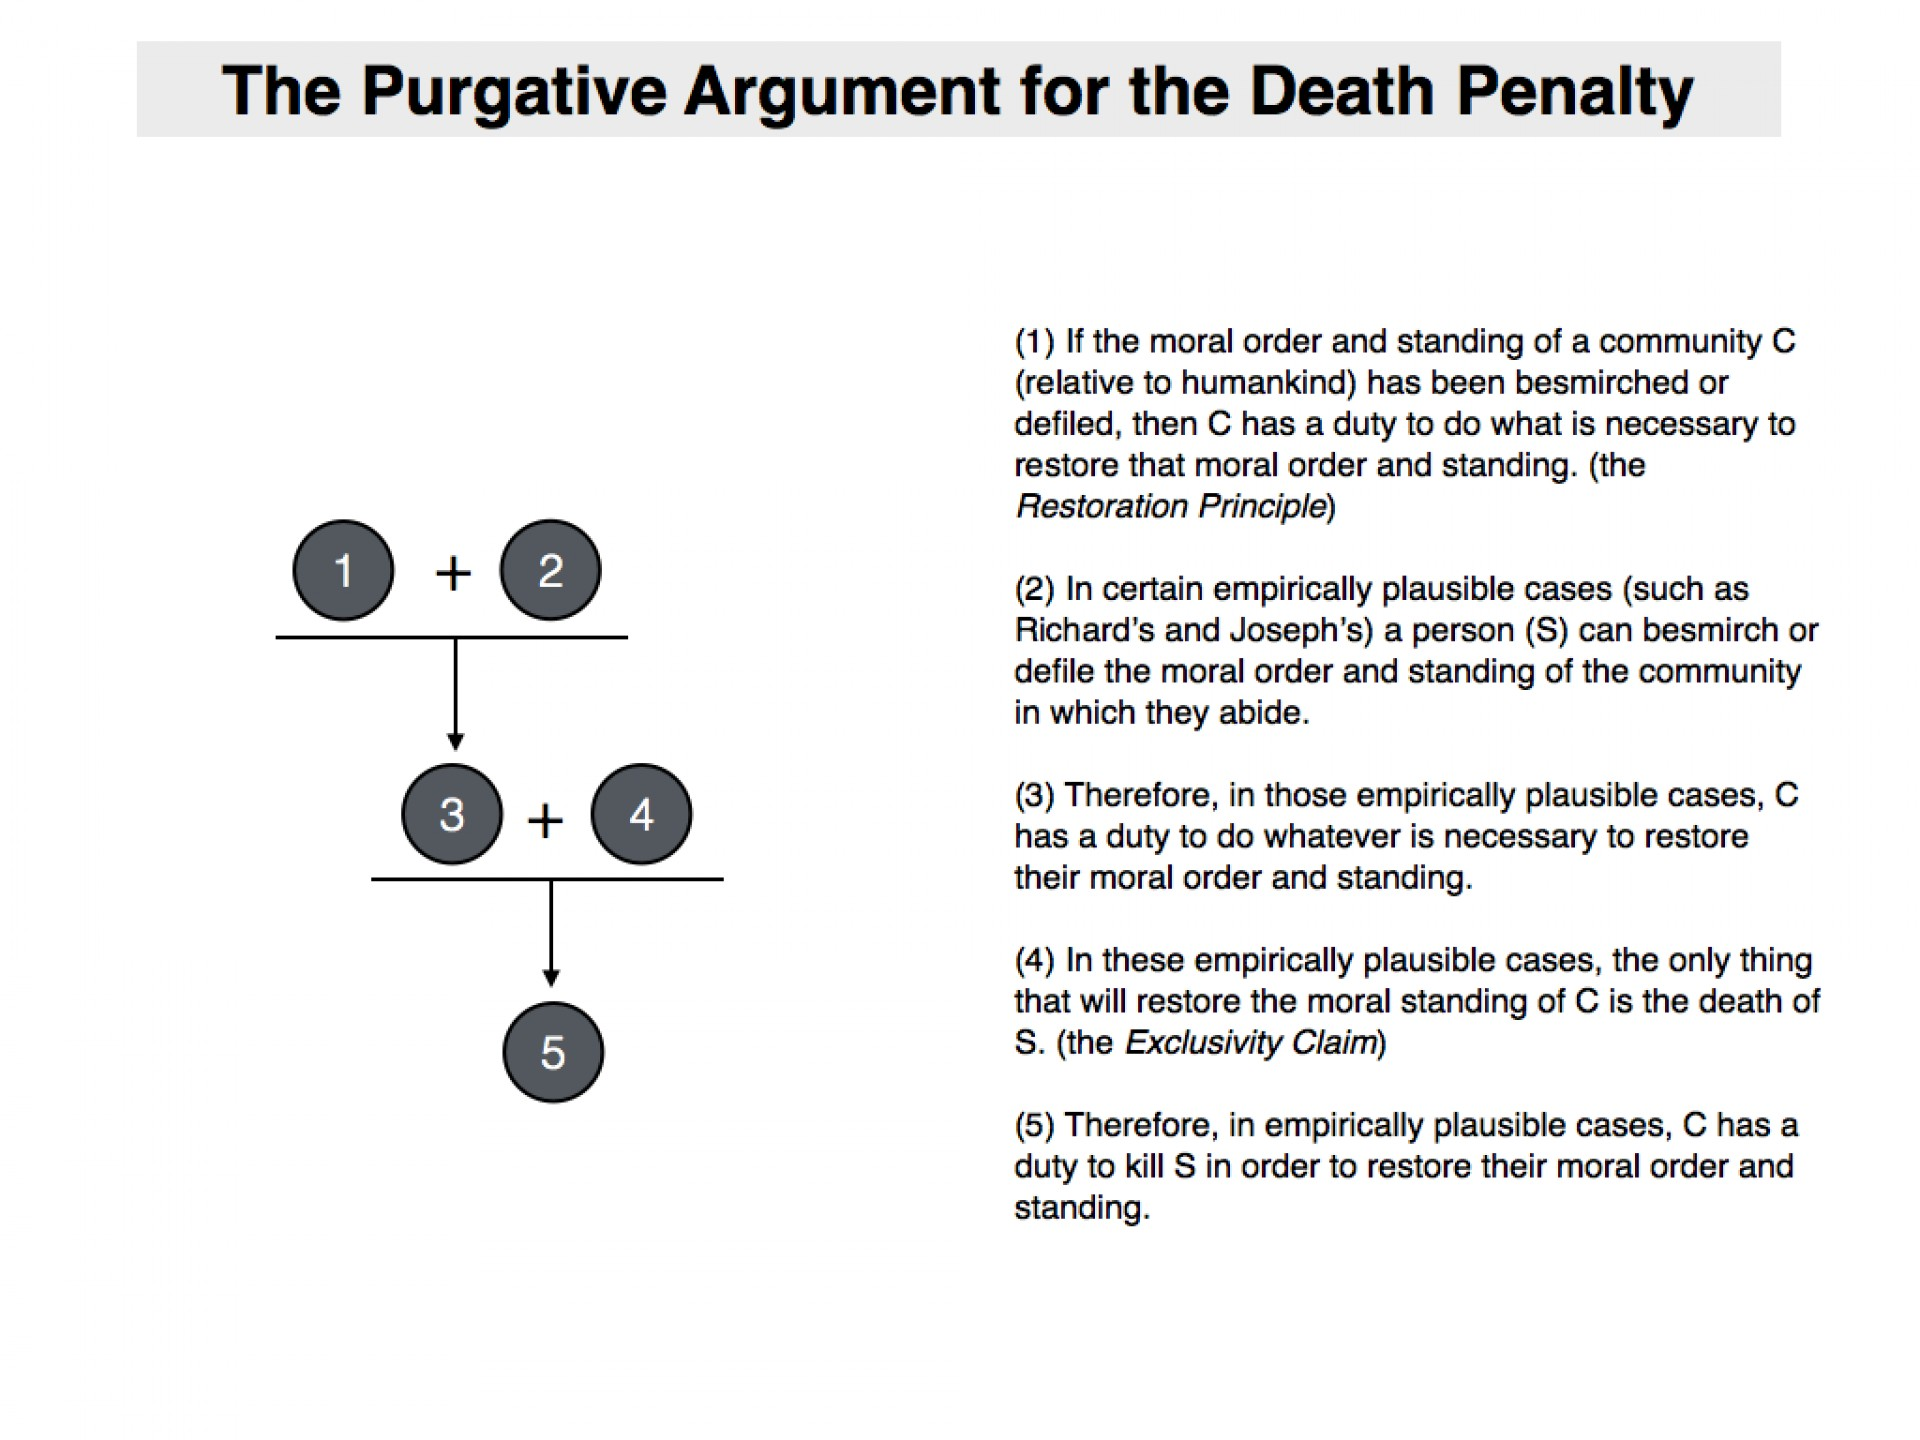 010 Arguments For Death Penalty Essay Example Purgativeargumentfordeathpenalty Breathtaking Advantages And Disadvantages Of Cons 1920